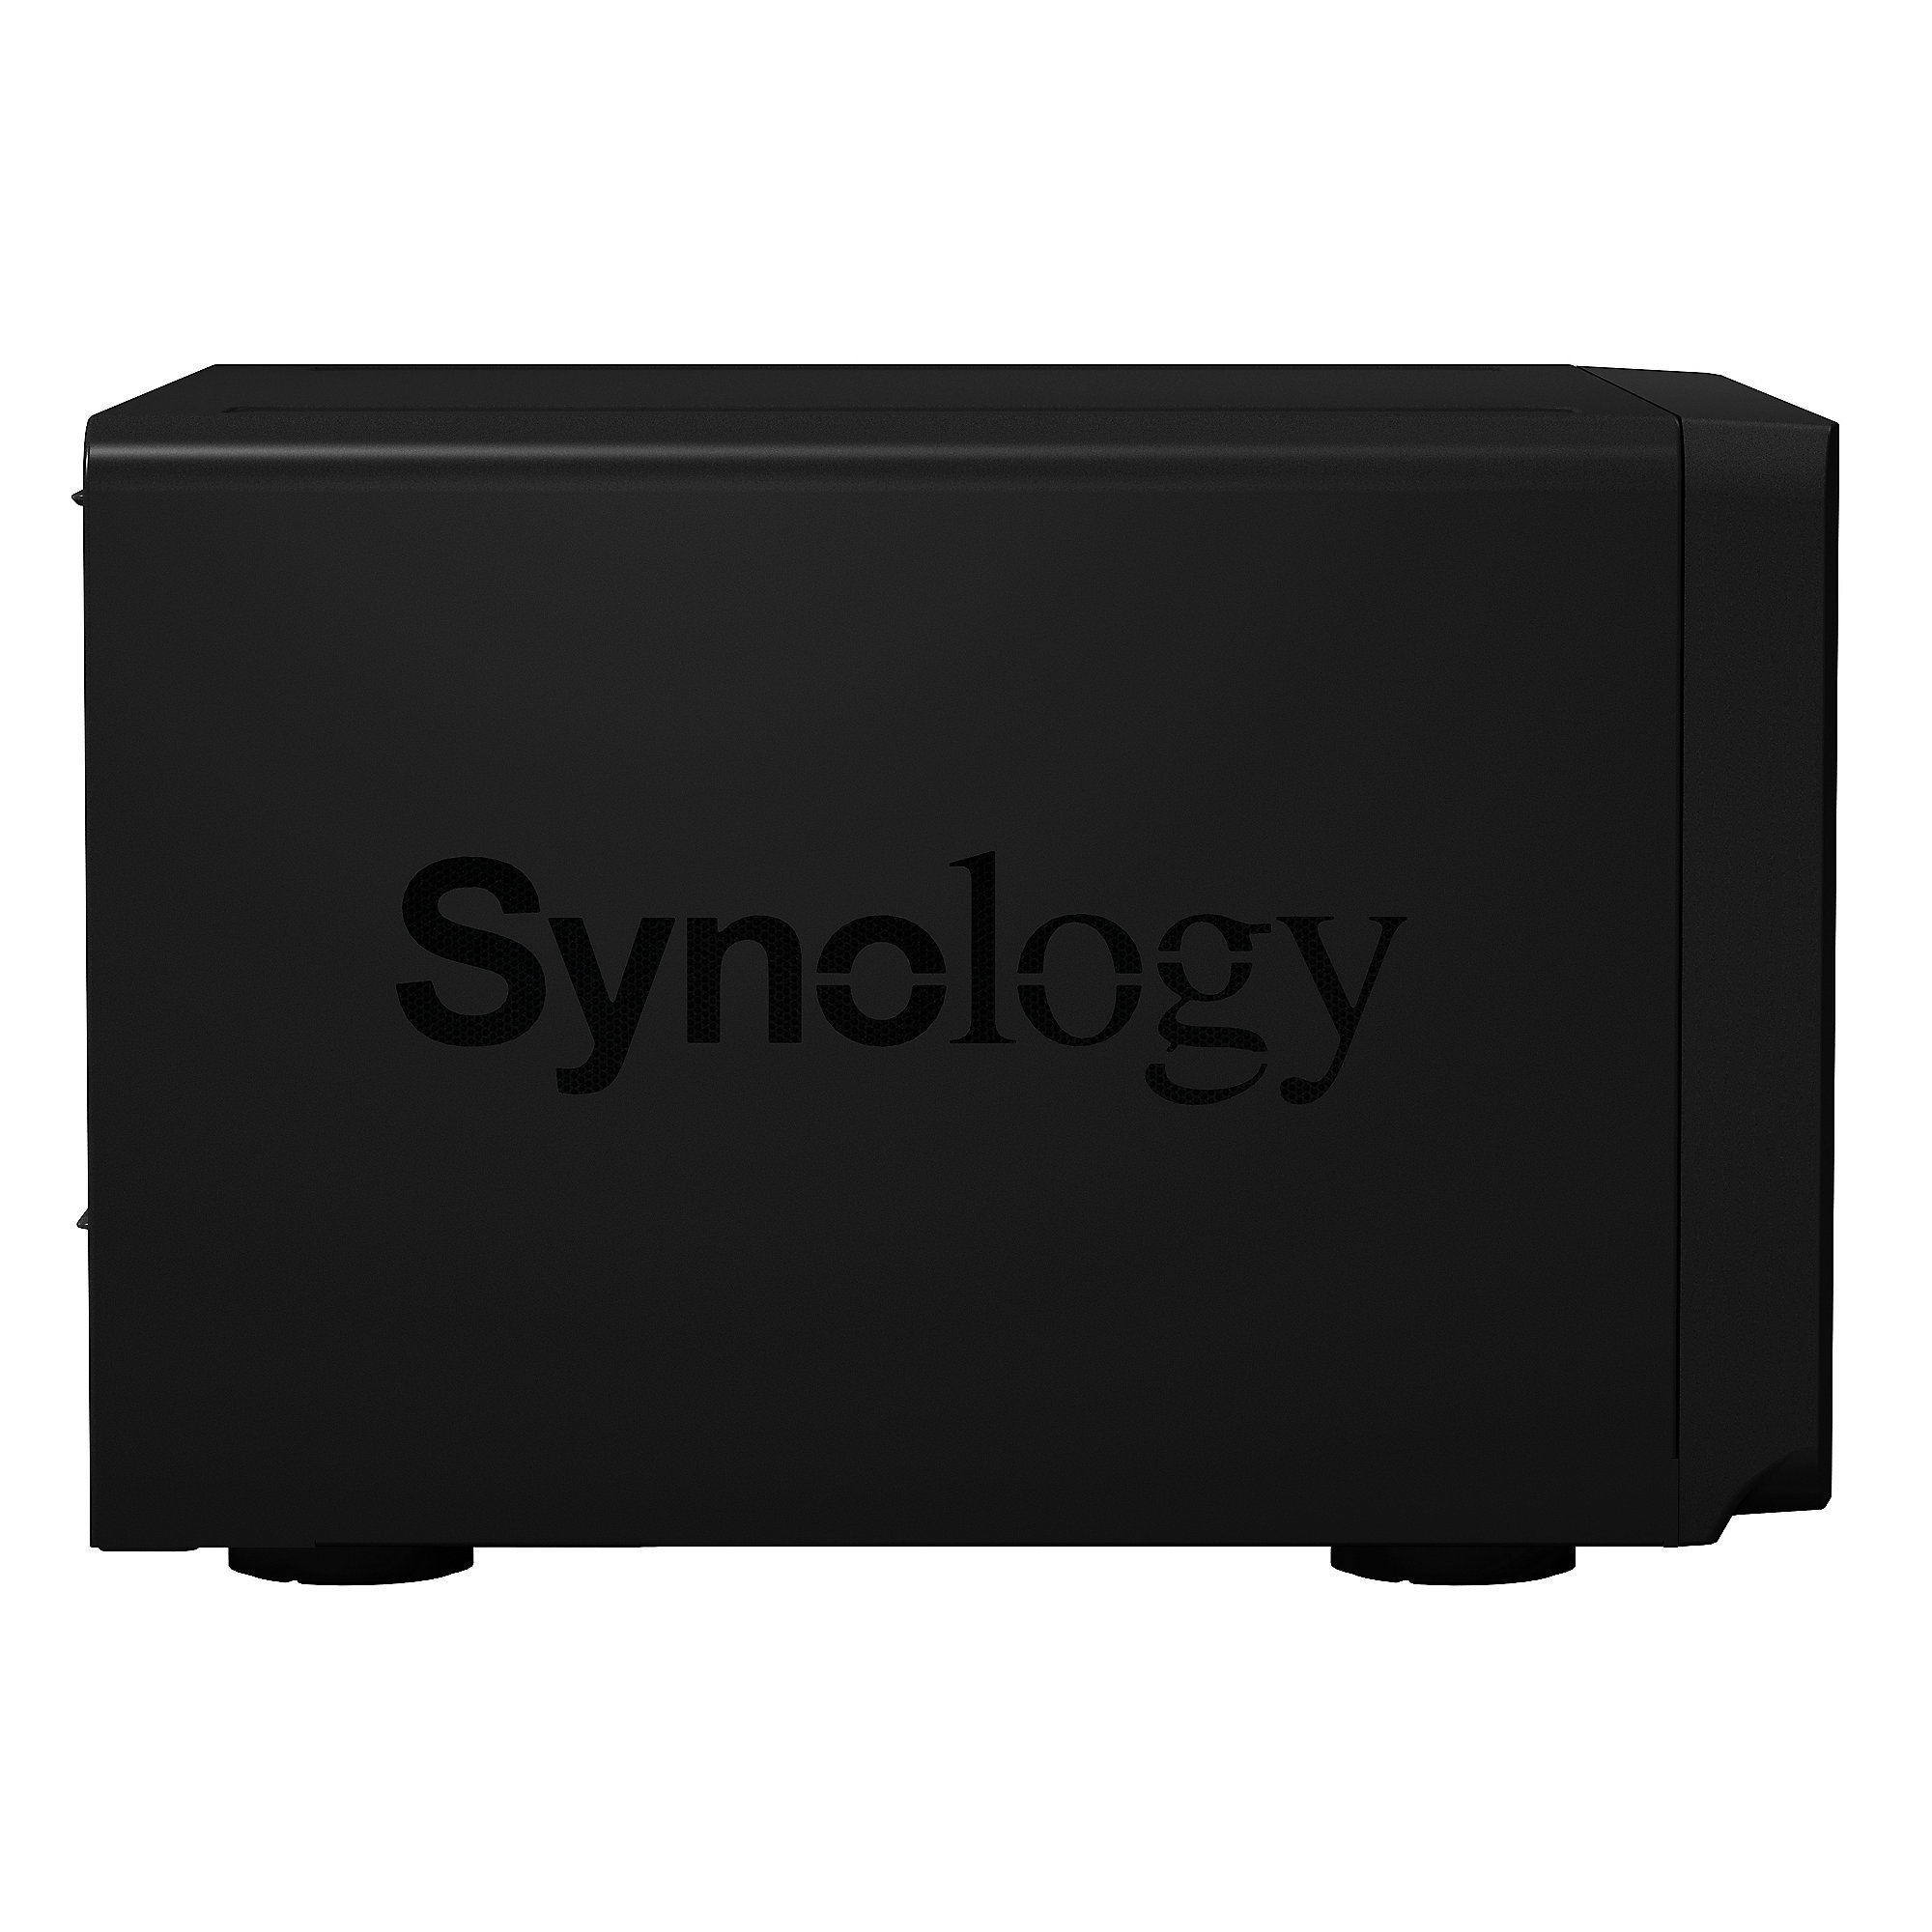 Synology Diskstation DS1517 NAS System 5-Bay